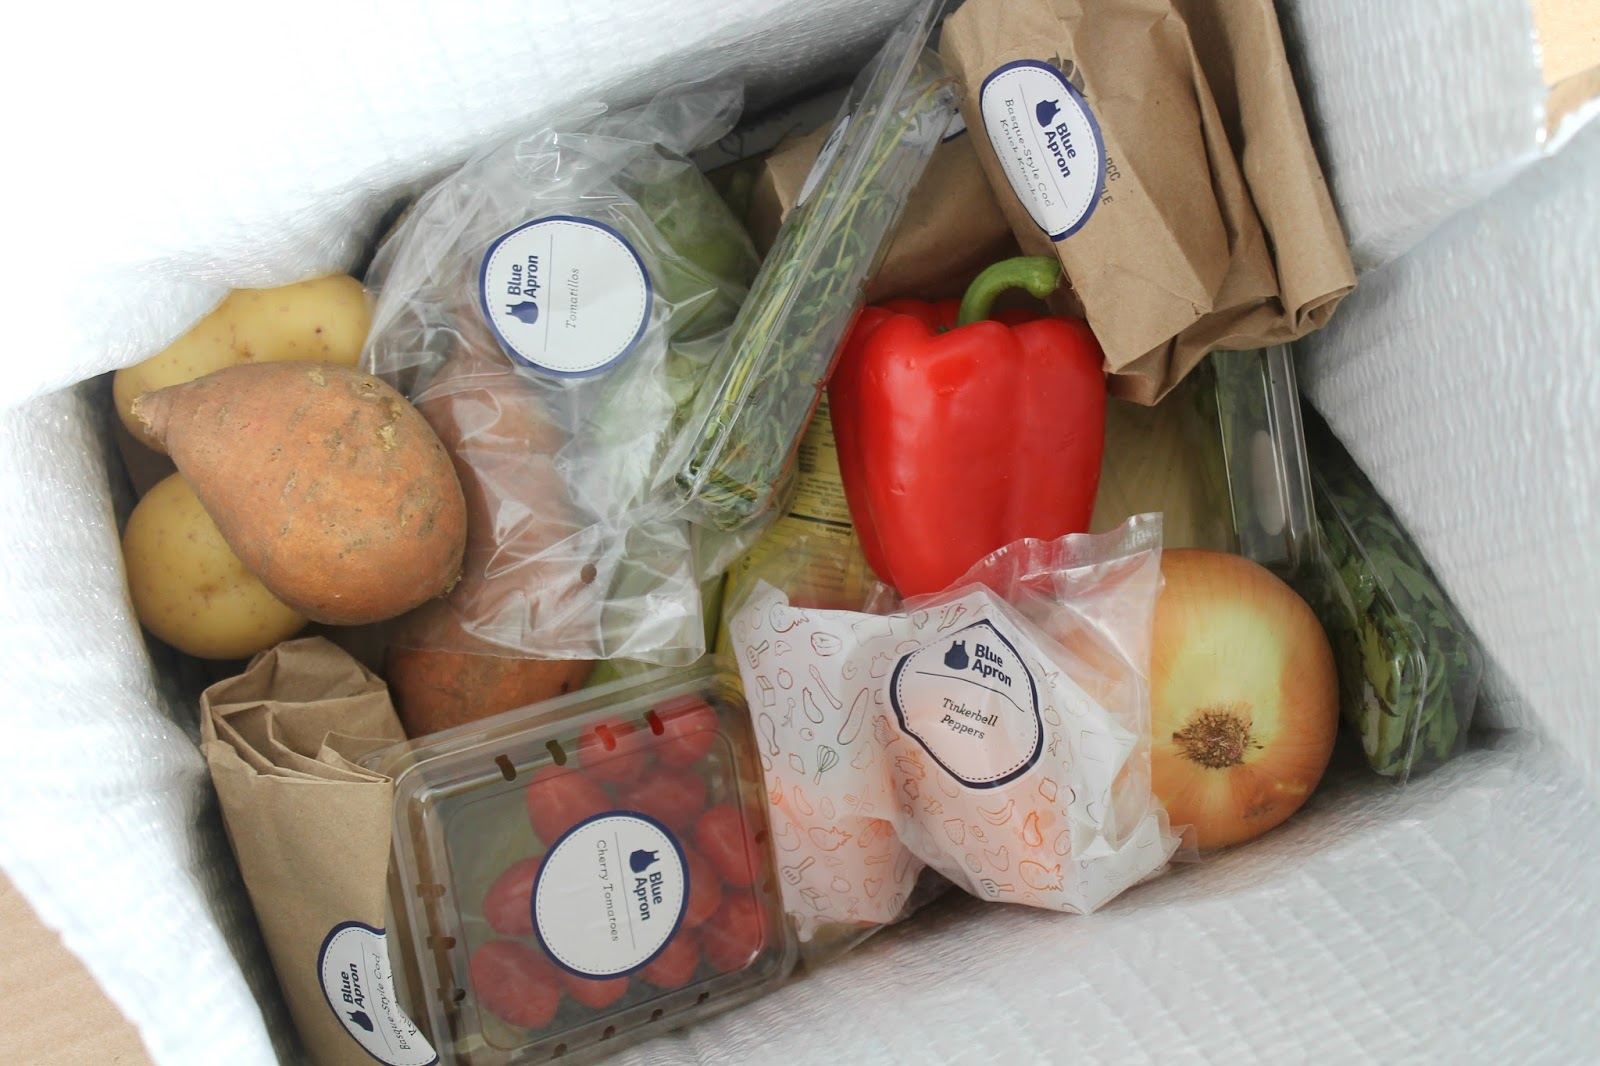 Blue apron working conditions - Packaging I Found This To Be The Biggest Difference Between The Services